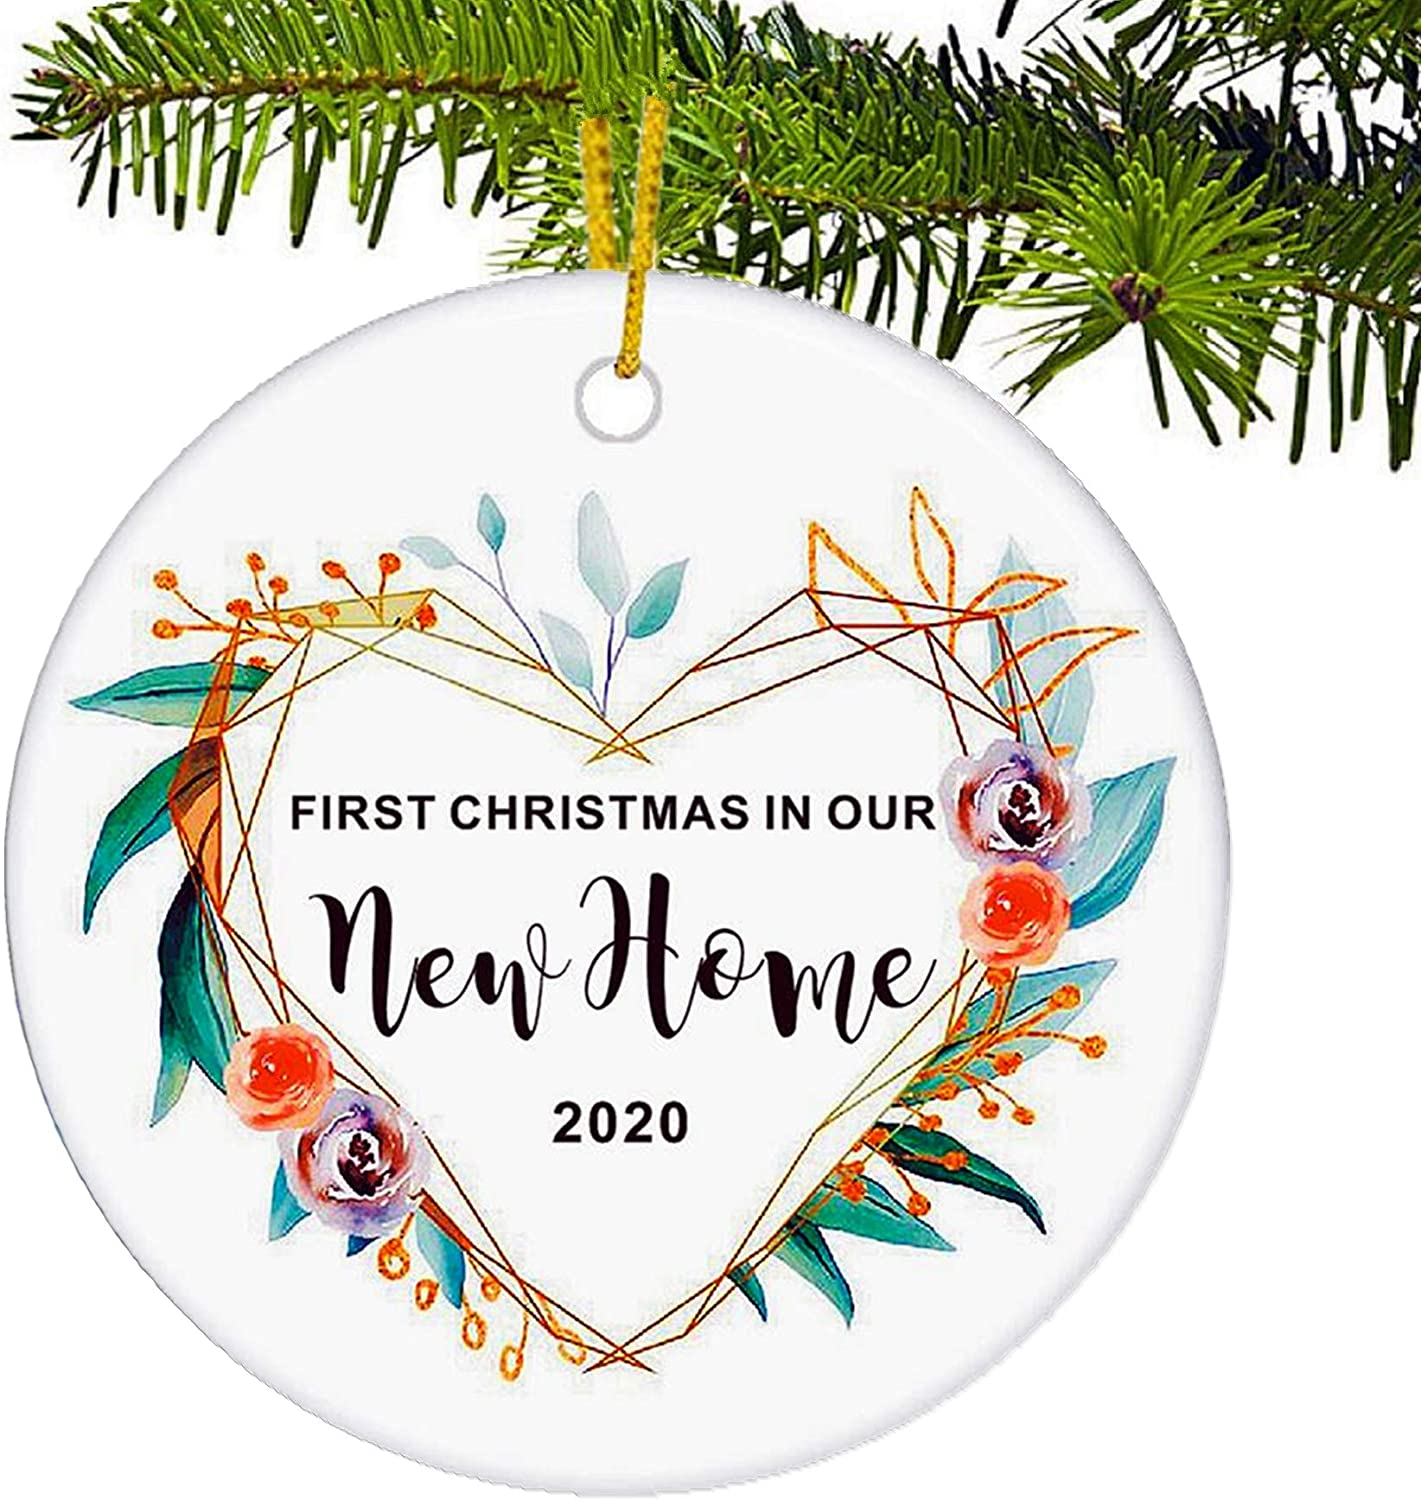 JUPPE Heart Wreath Our First Christmas in Our New Home 2020 Decoration Mr & Mrs Newlywed Xmax Tree Ornament Romantic Couples Gift (Heart-3)